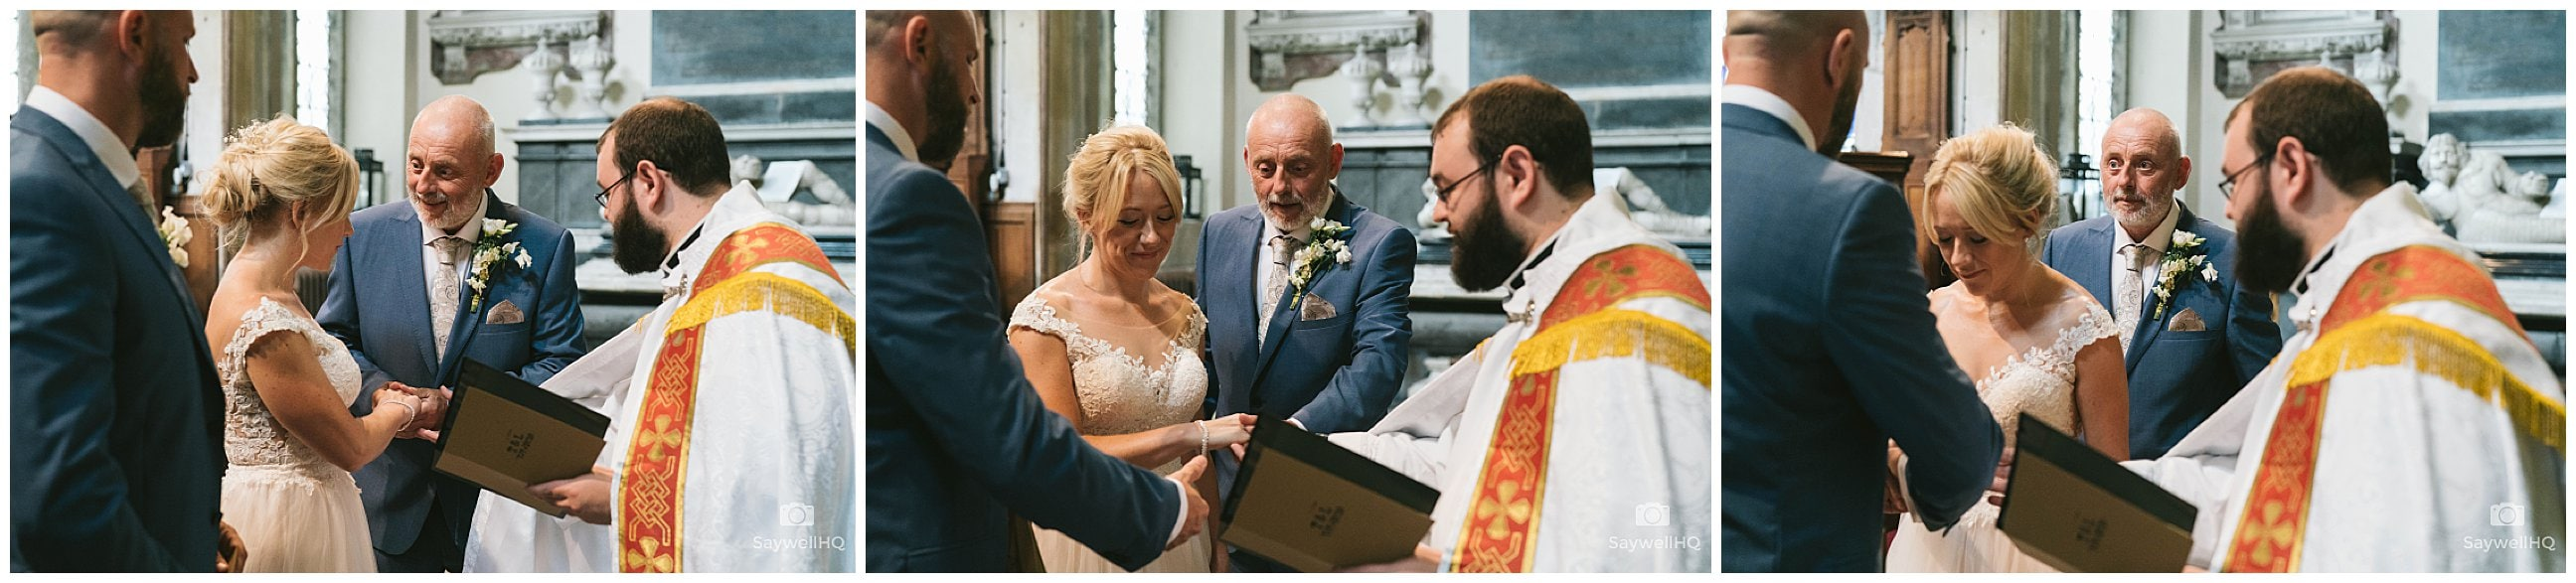 Derby Wedding Photography at St Bartholomew's Church - dad handing his daughter's hand in marriage to the groom